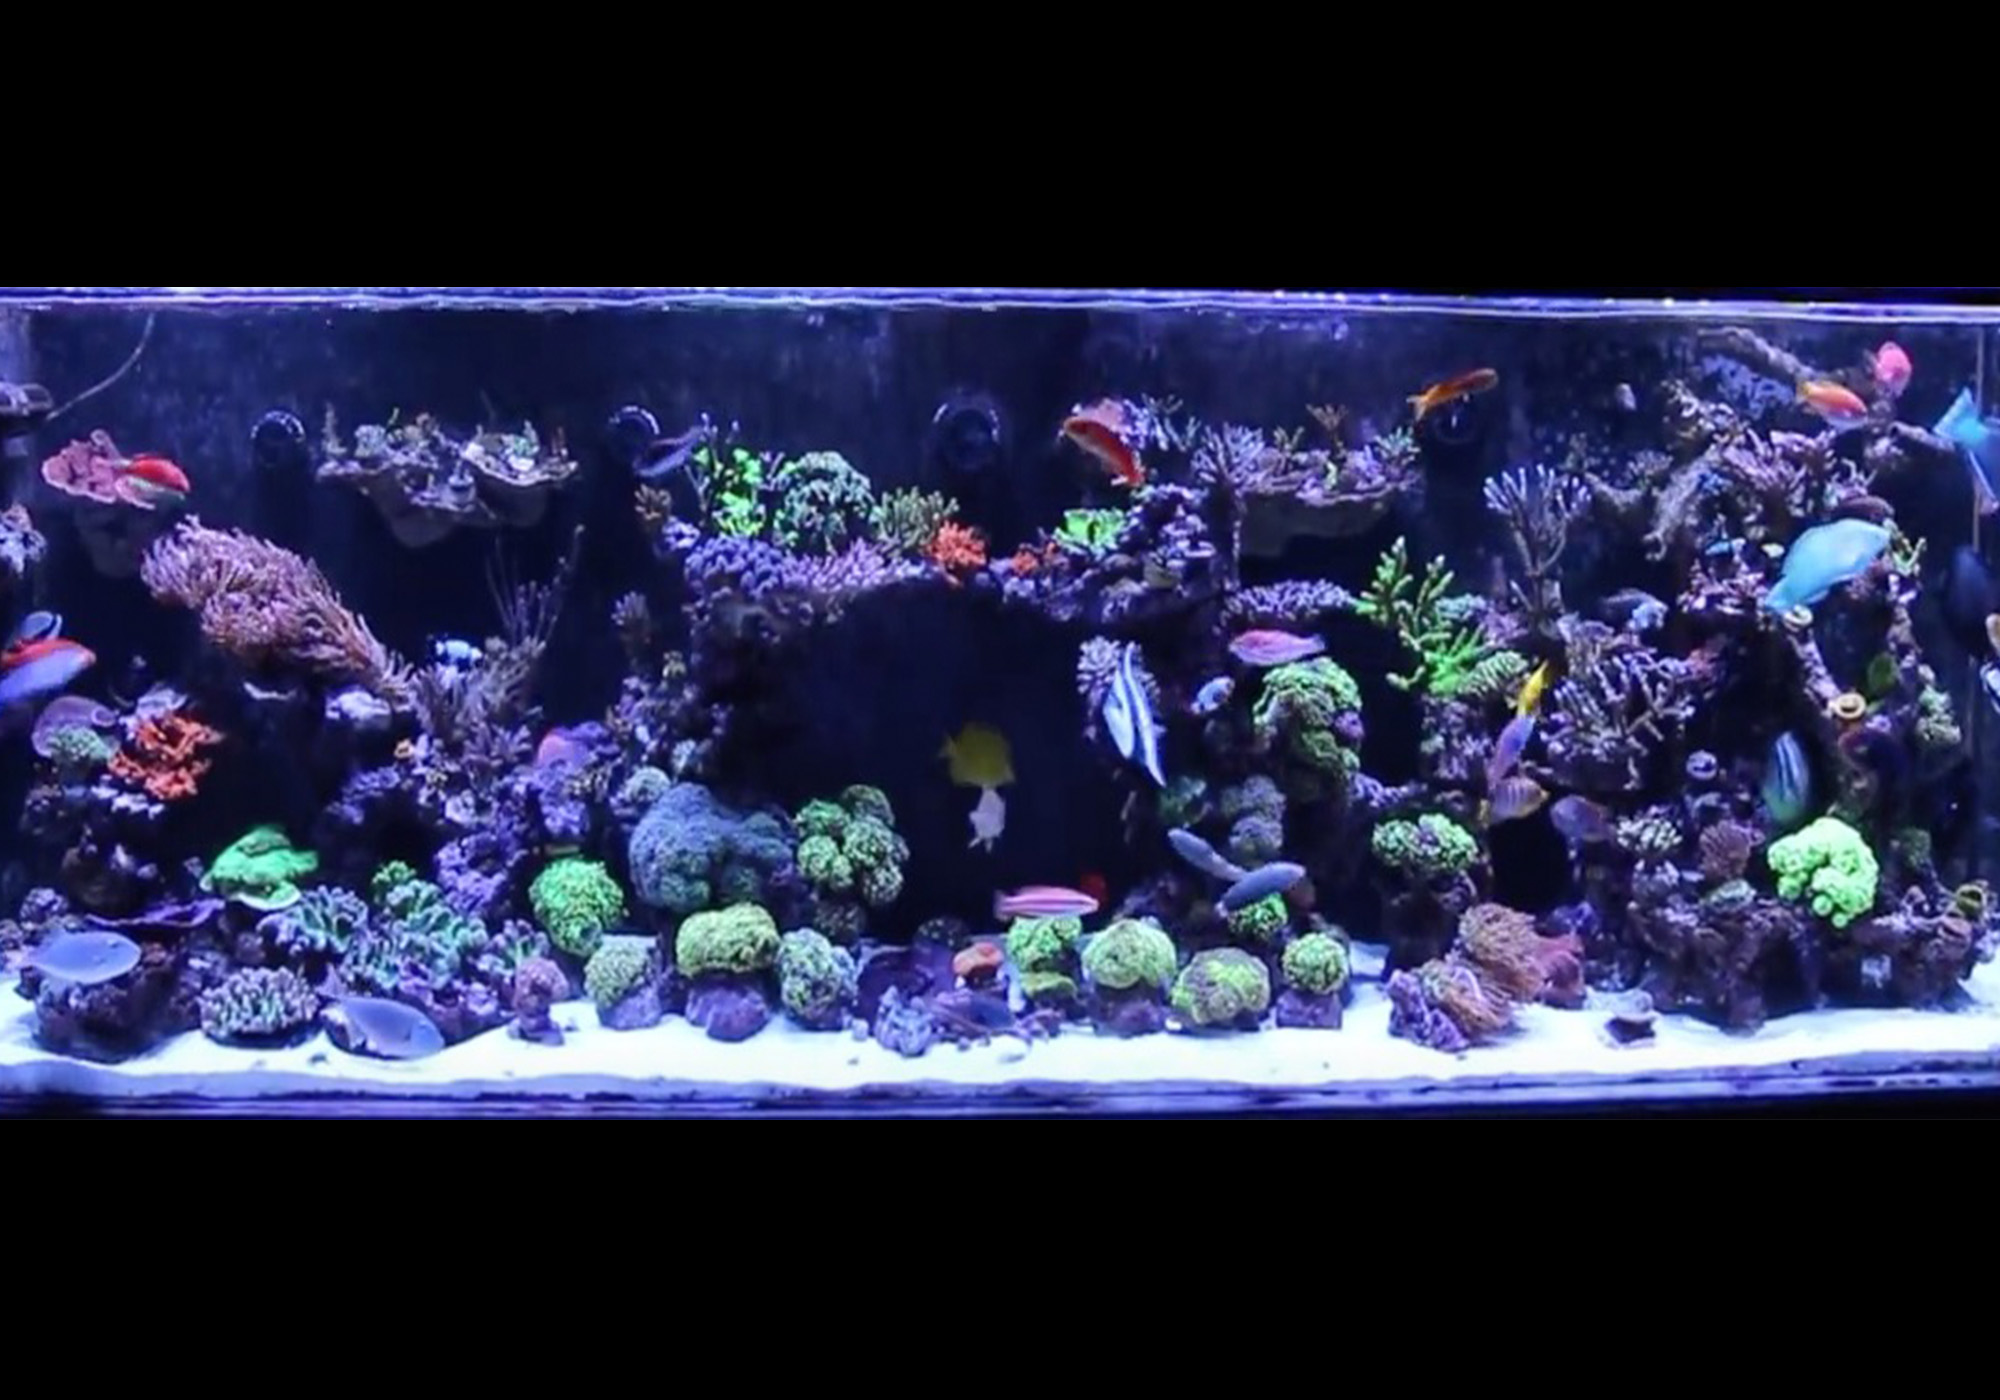 Saltwater aquarium - Saltwater Aquarium For Beginners